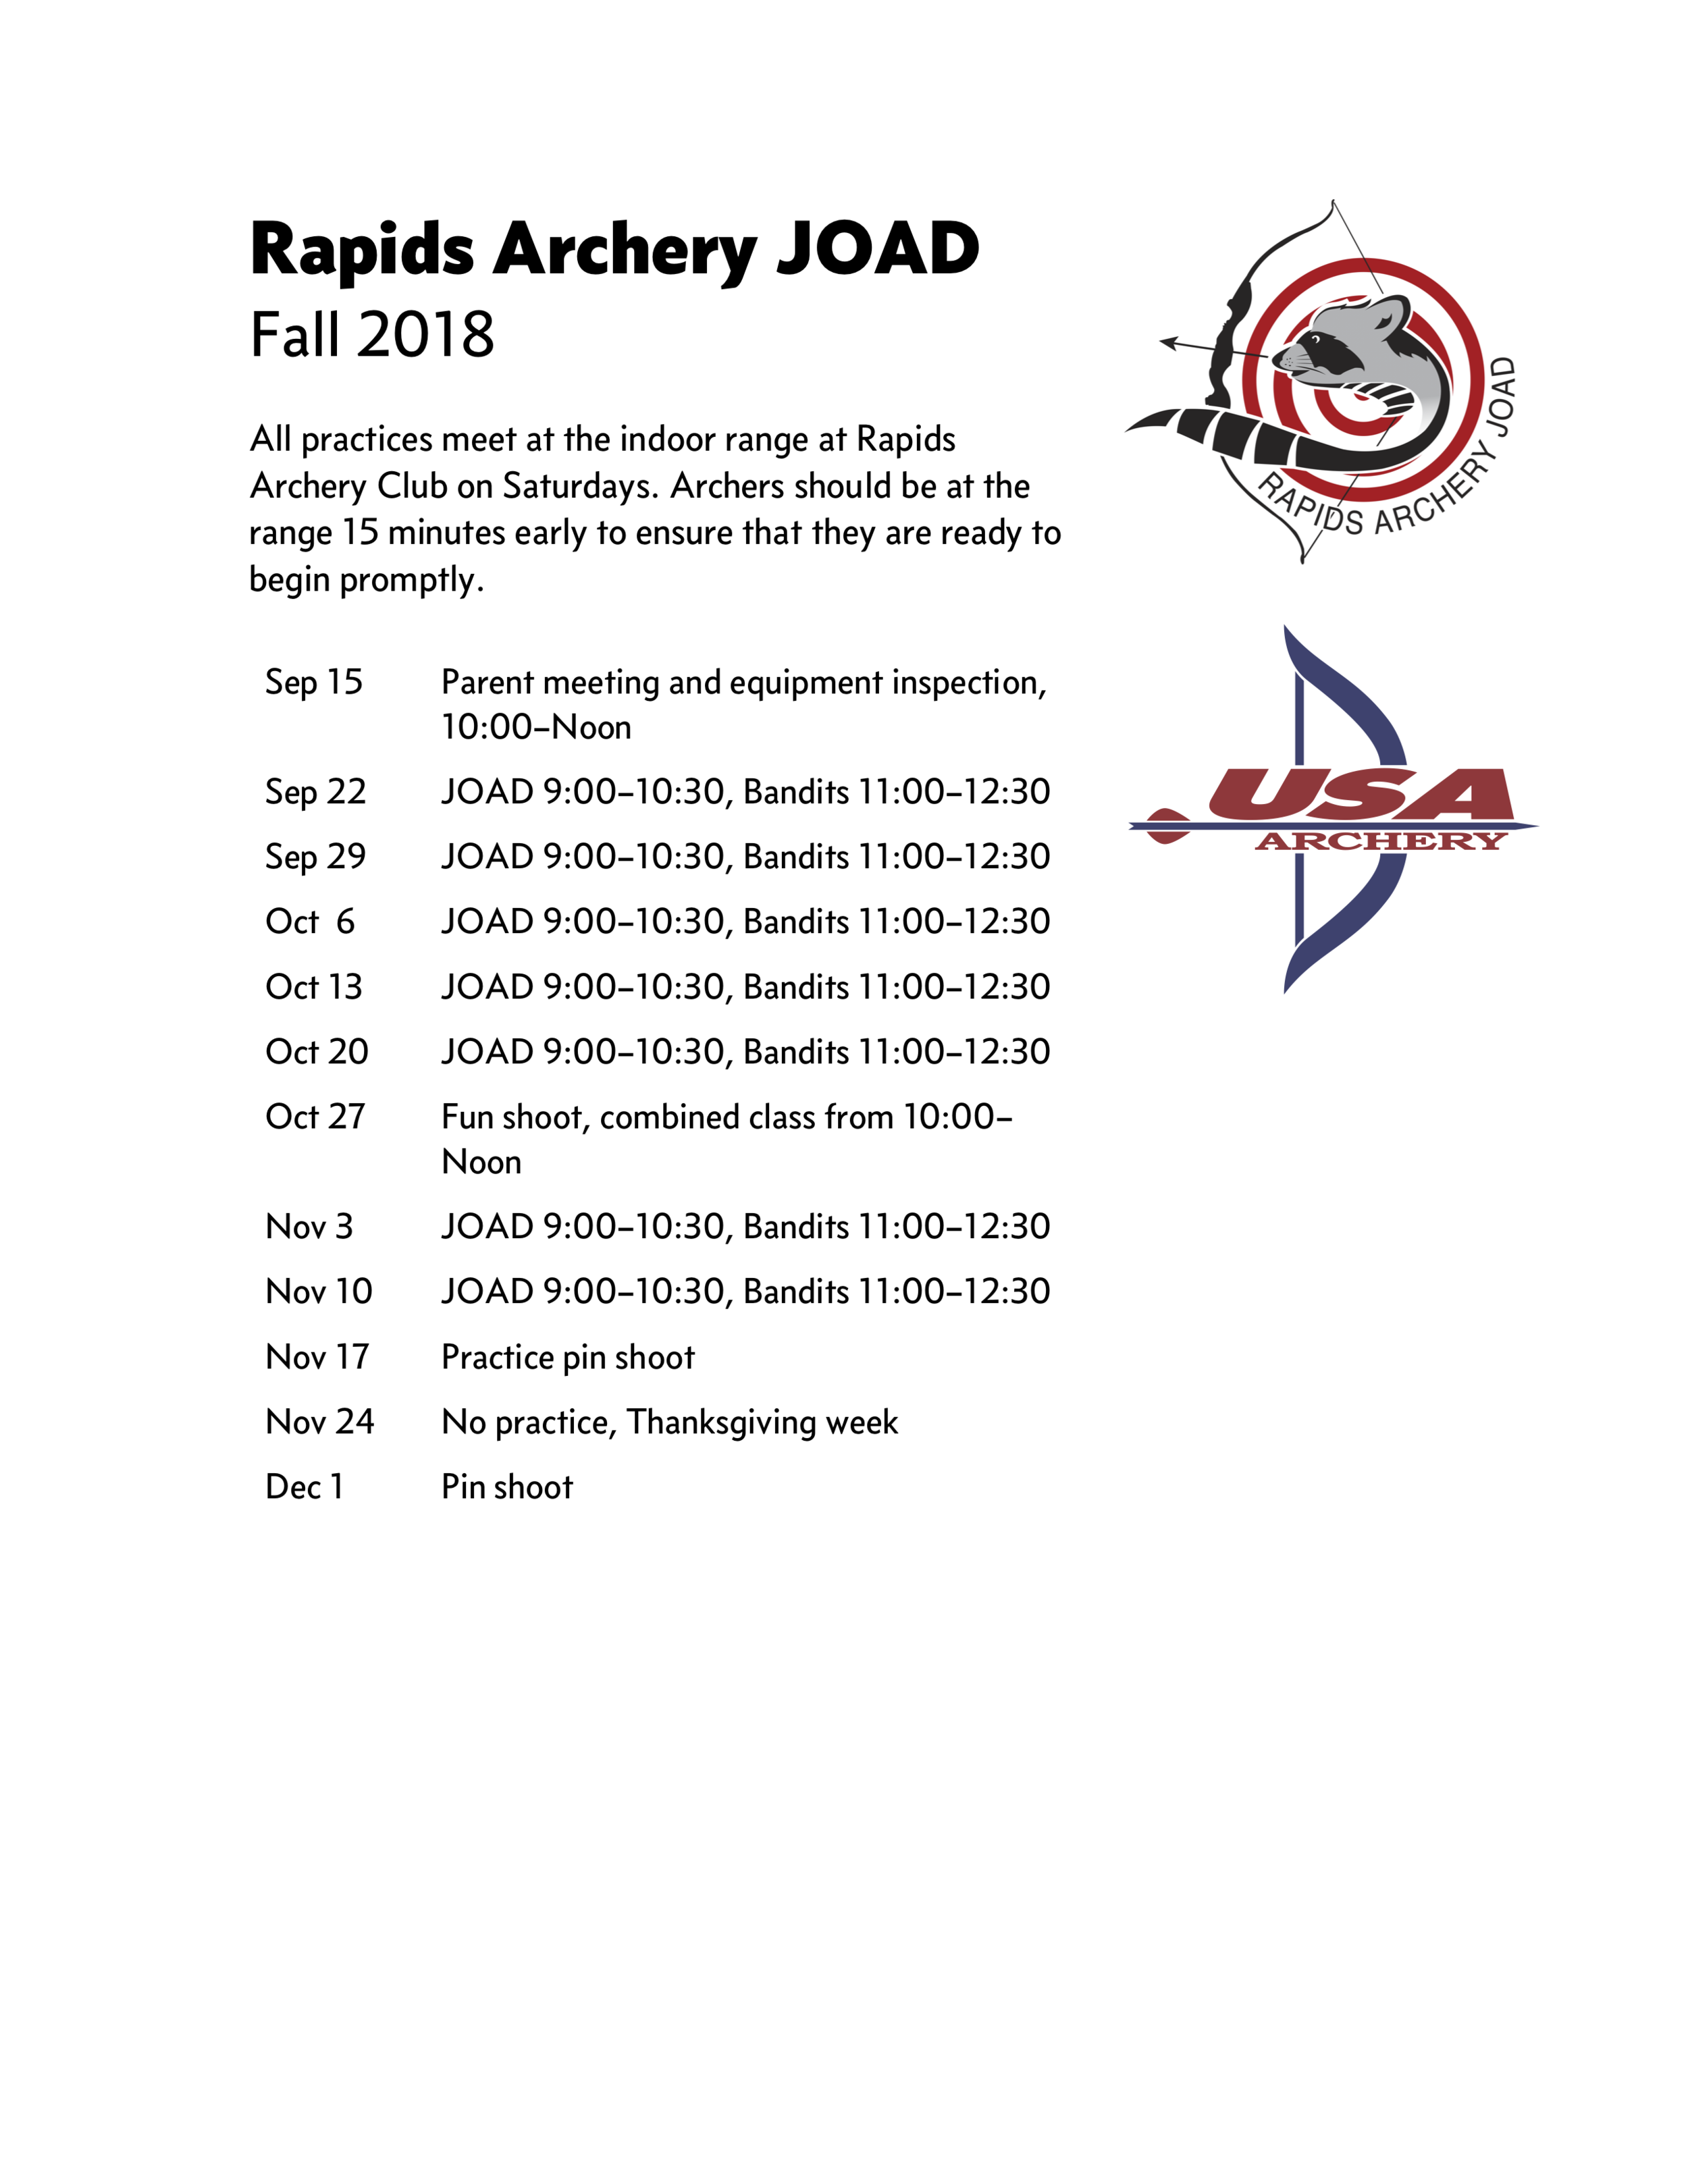 Rapids Archery JOAD fall 2018 schedule.png